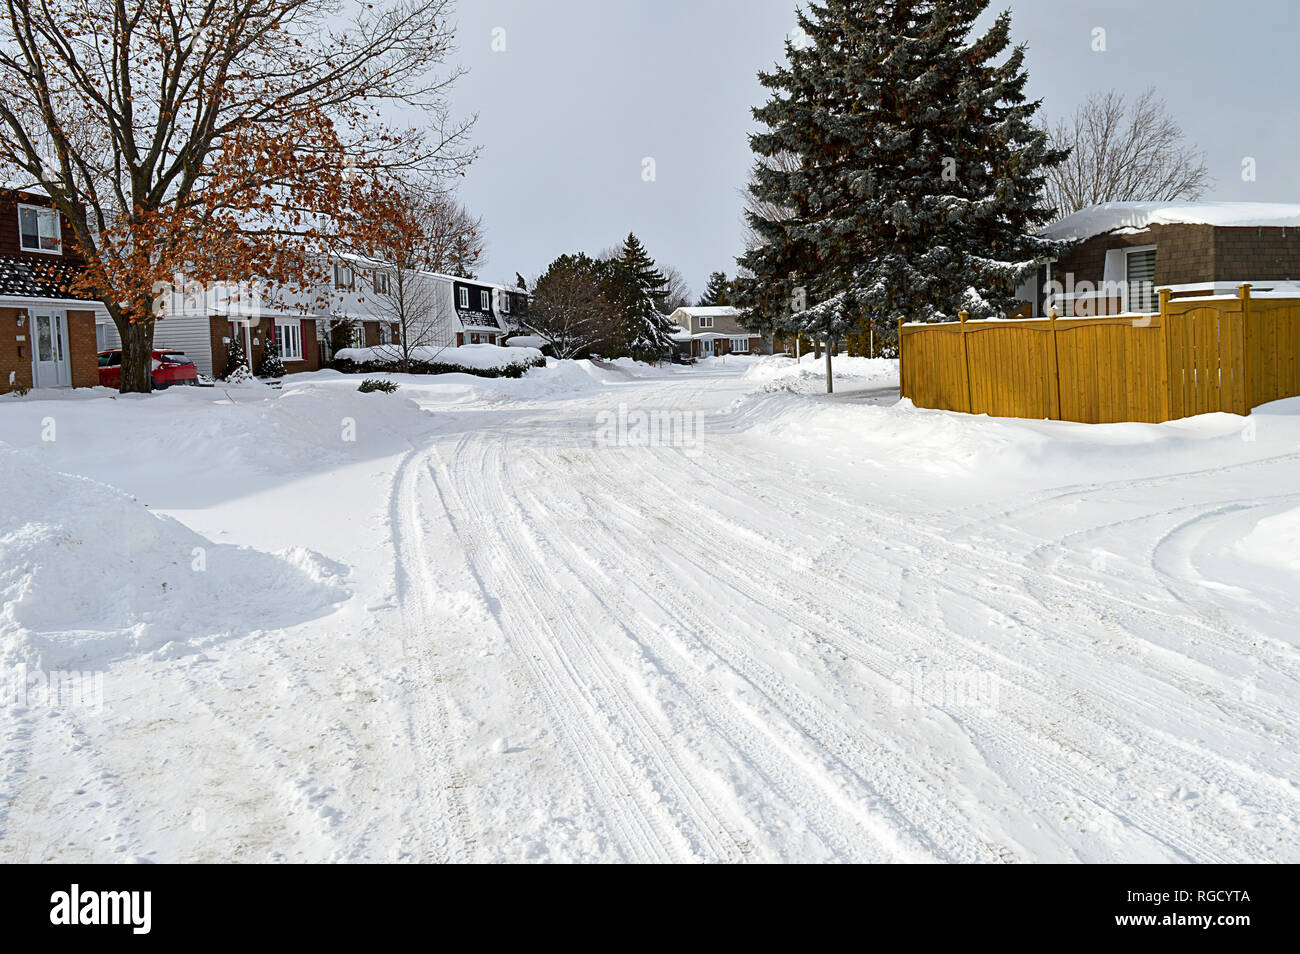 A typical urban street in Canada, during a typical Canadian Winter. - Stock Image